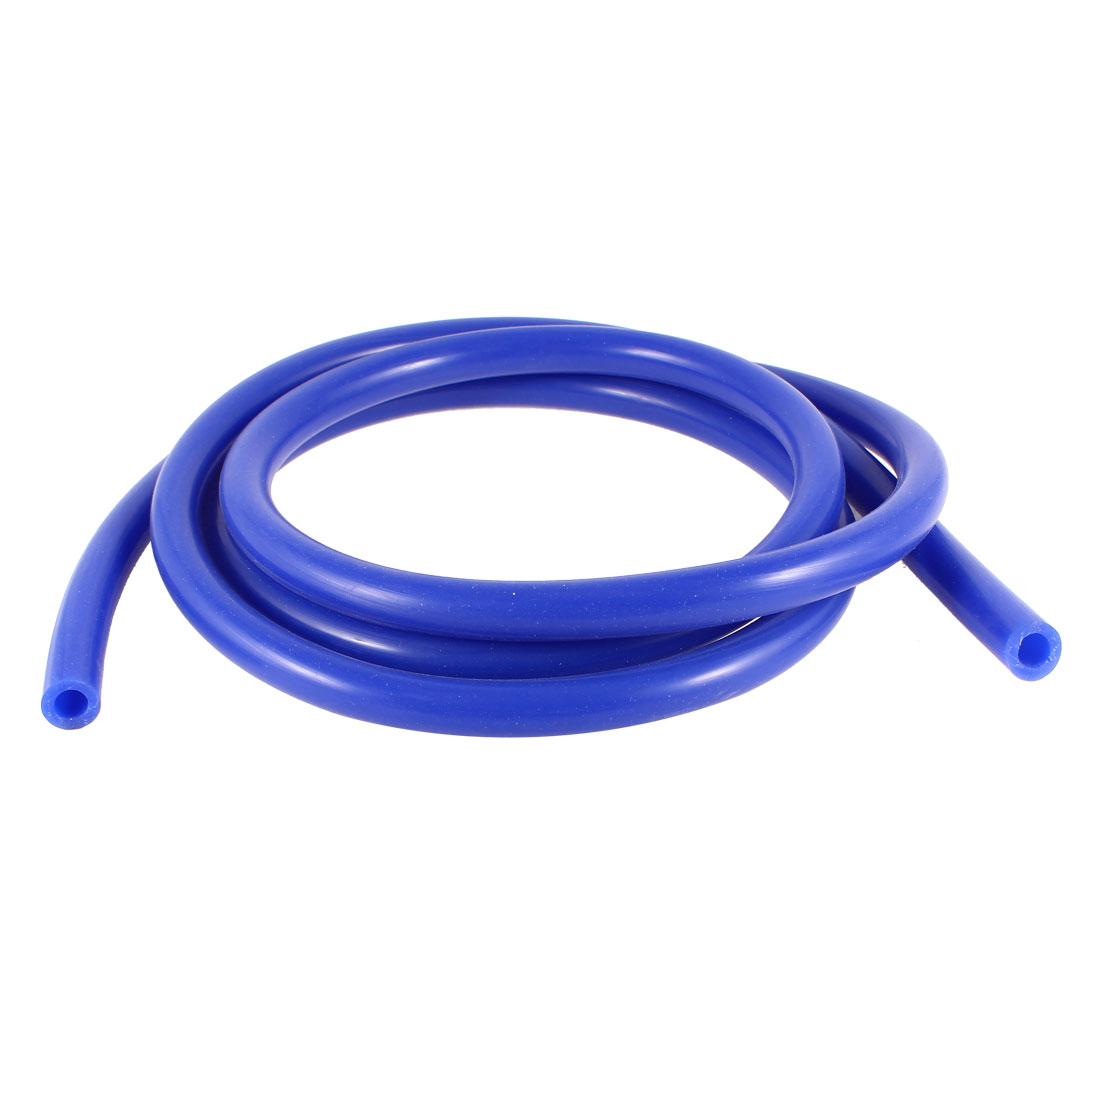 2 Meters Long 7mm Inner Dia Silicone Car Vacuum Hose Tubing Pipe Blue